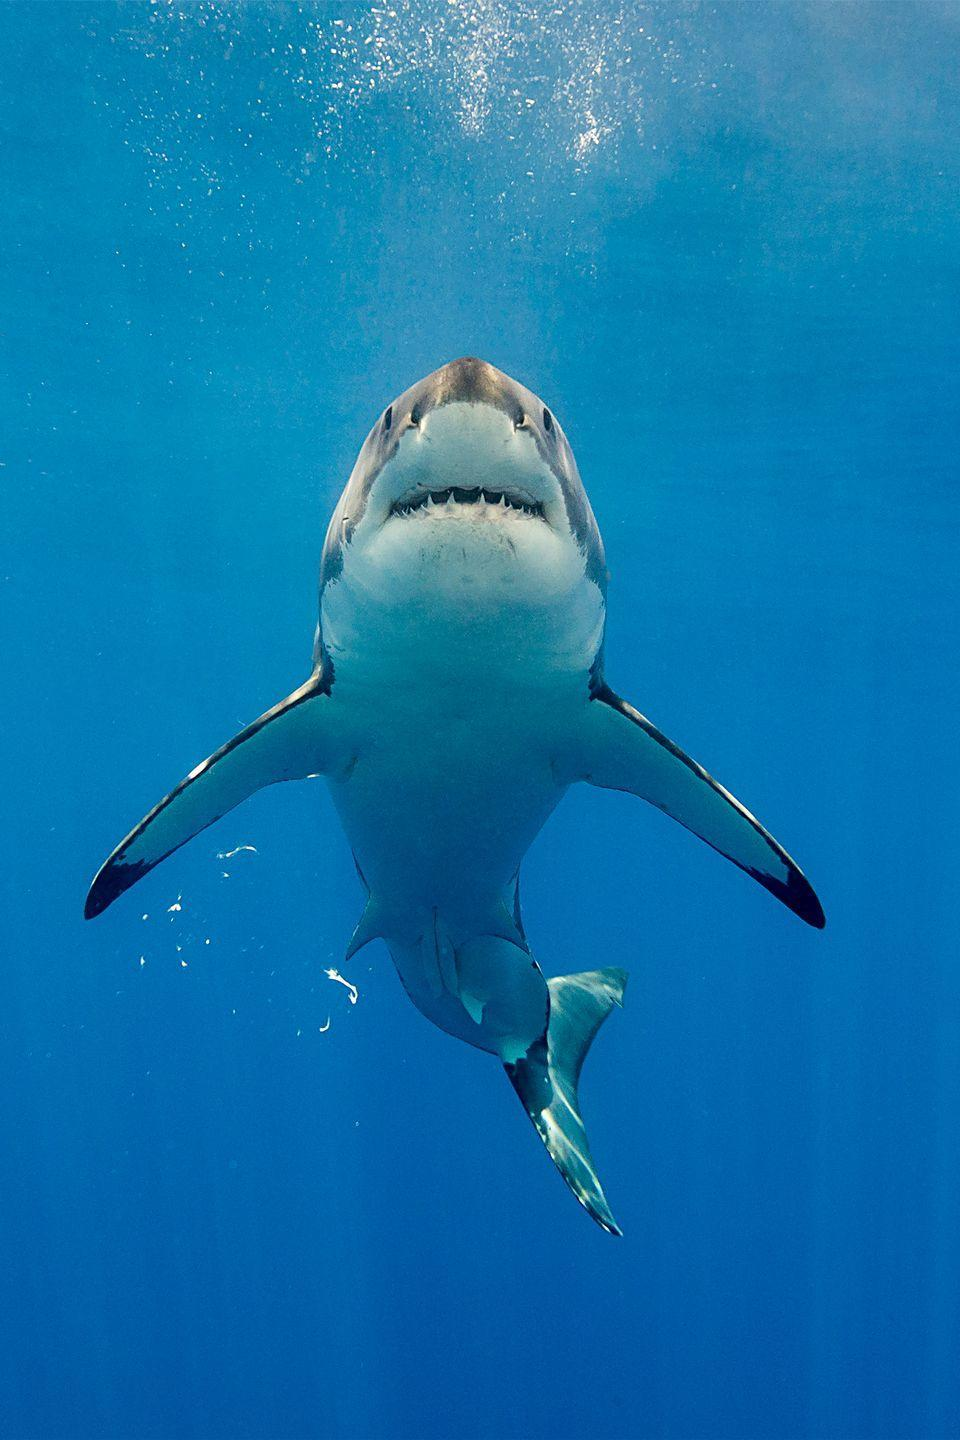 <p>This doesn't necessarily help the stereotype that great white sharks are cold-blooded killers. But they do have an insane ability to detect blood. They're able to sense blood from 3 miles away, and can also identify a small drop in a 25 gallon bucket.</p>